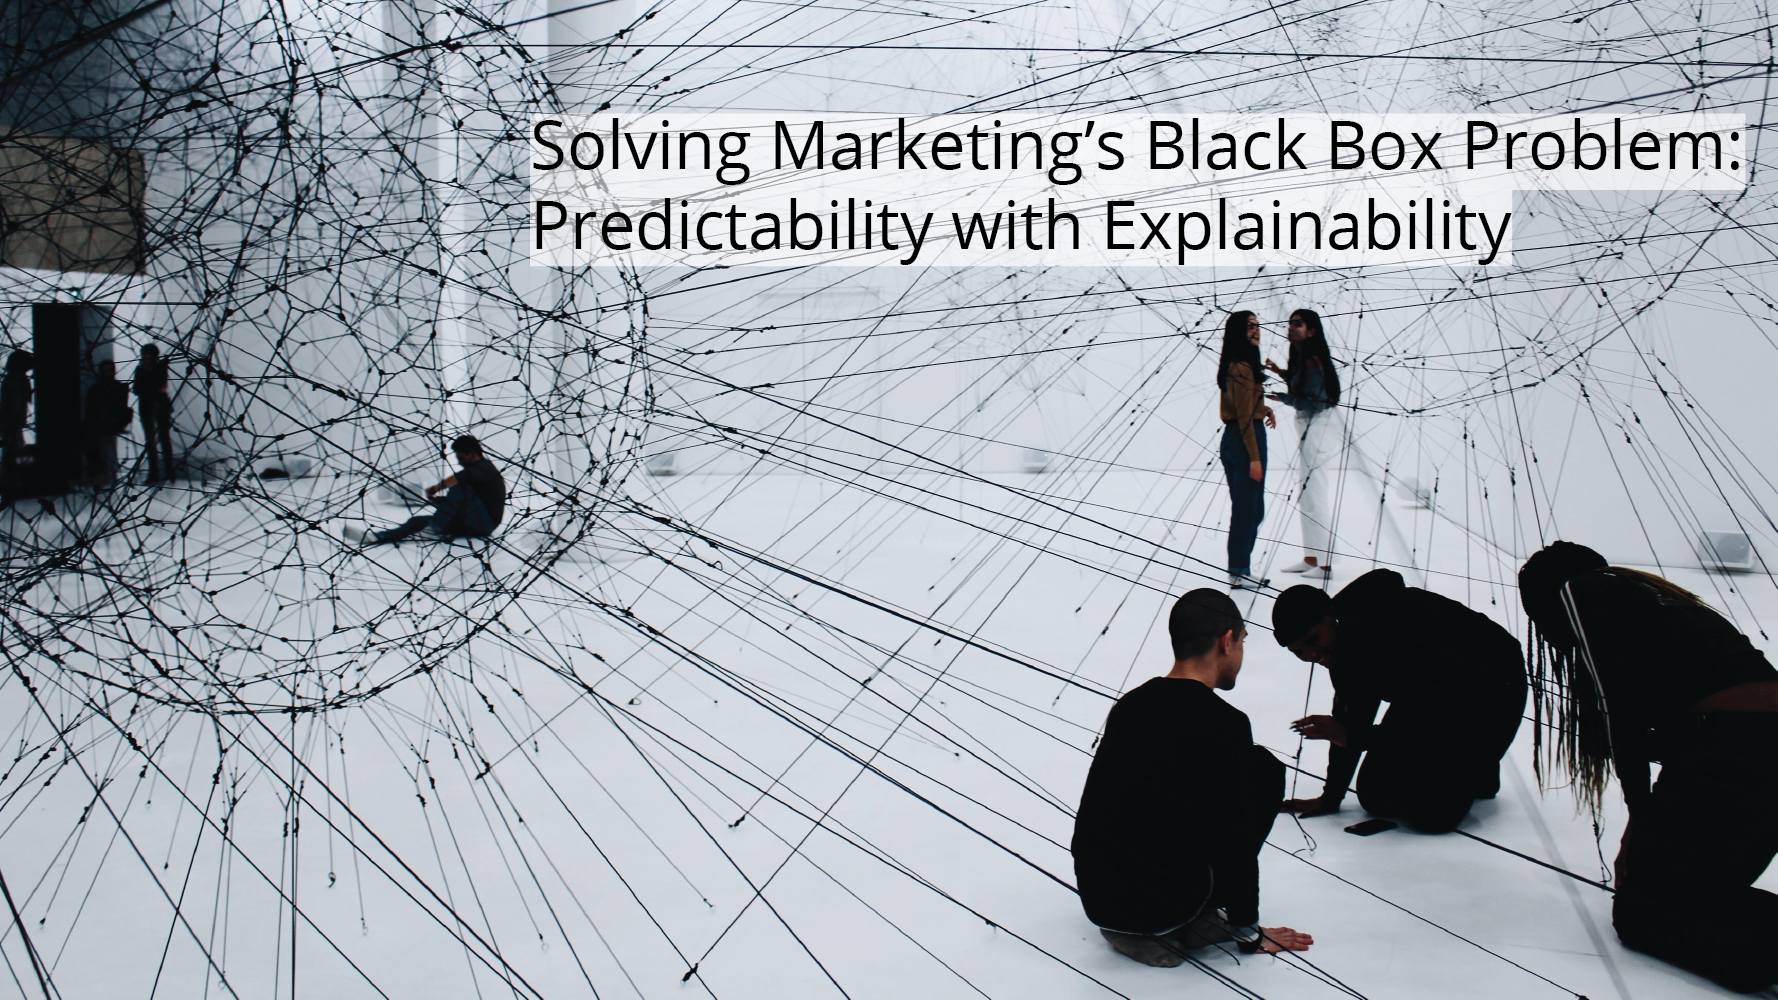 Solving marketing's black box problem: predictability with explainability